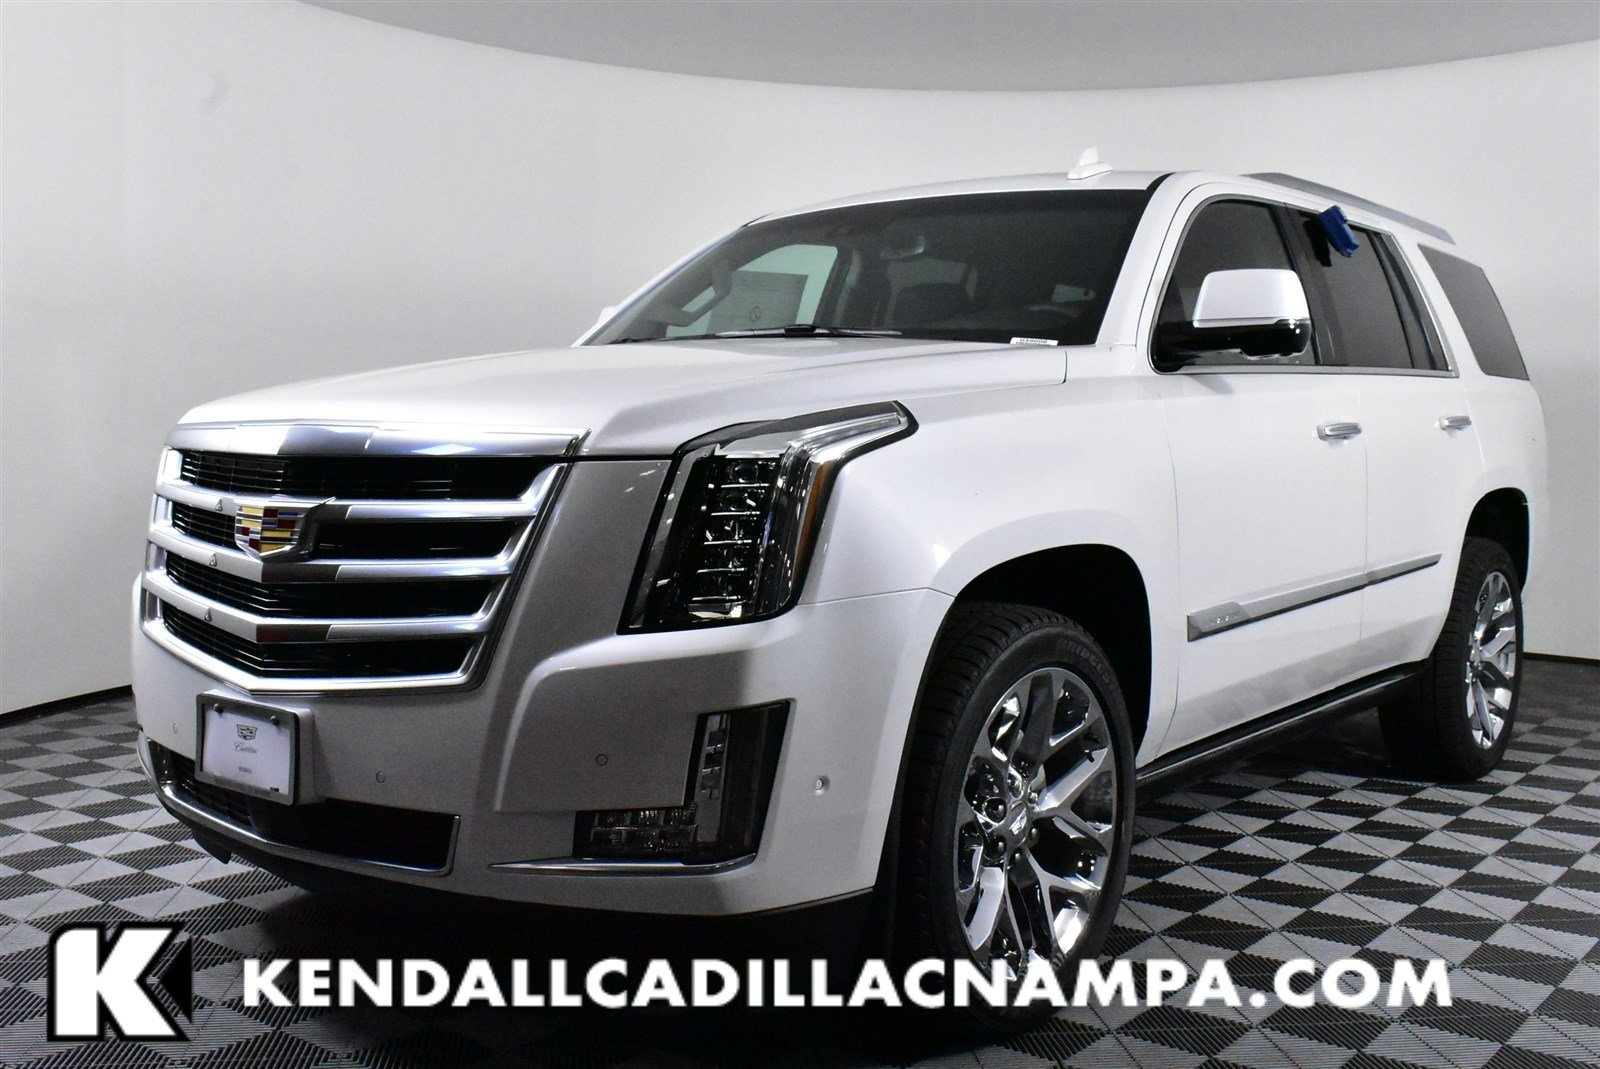 New 2019 Cadillac Escalade Premium Luxury 4wd In Nampa D39006